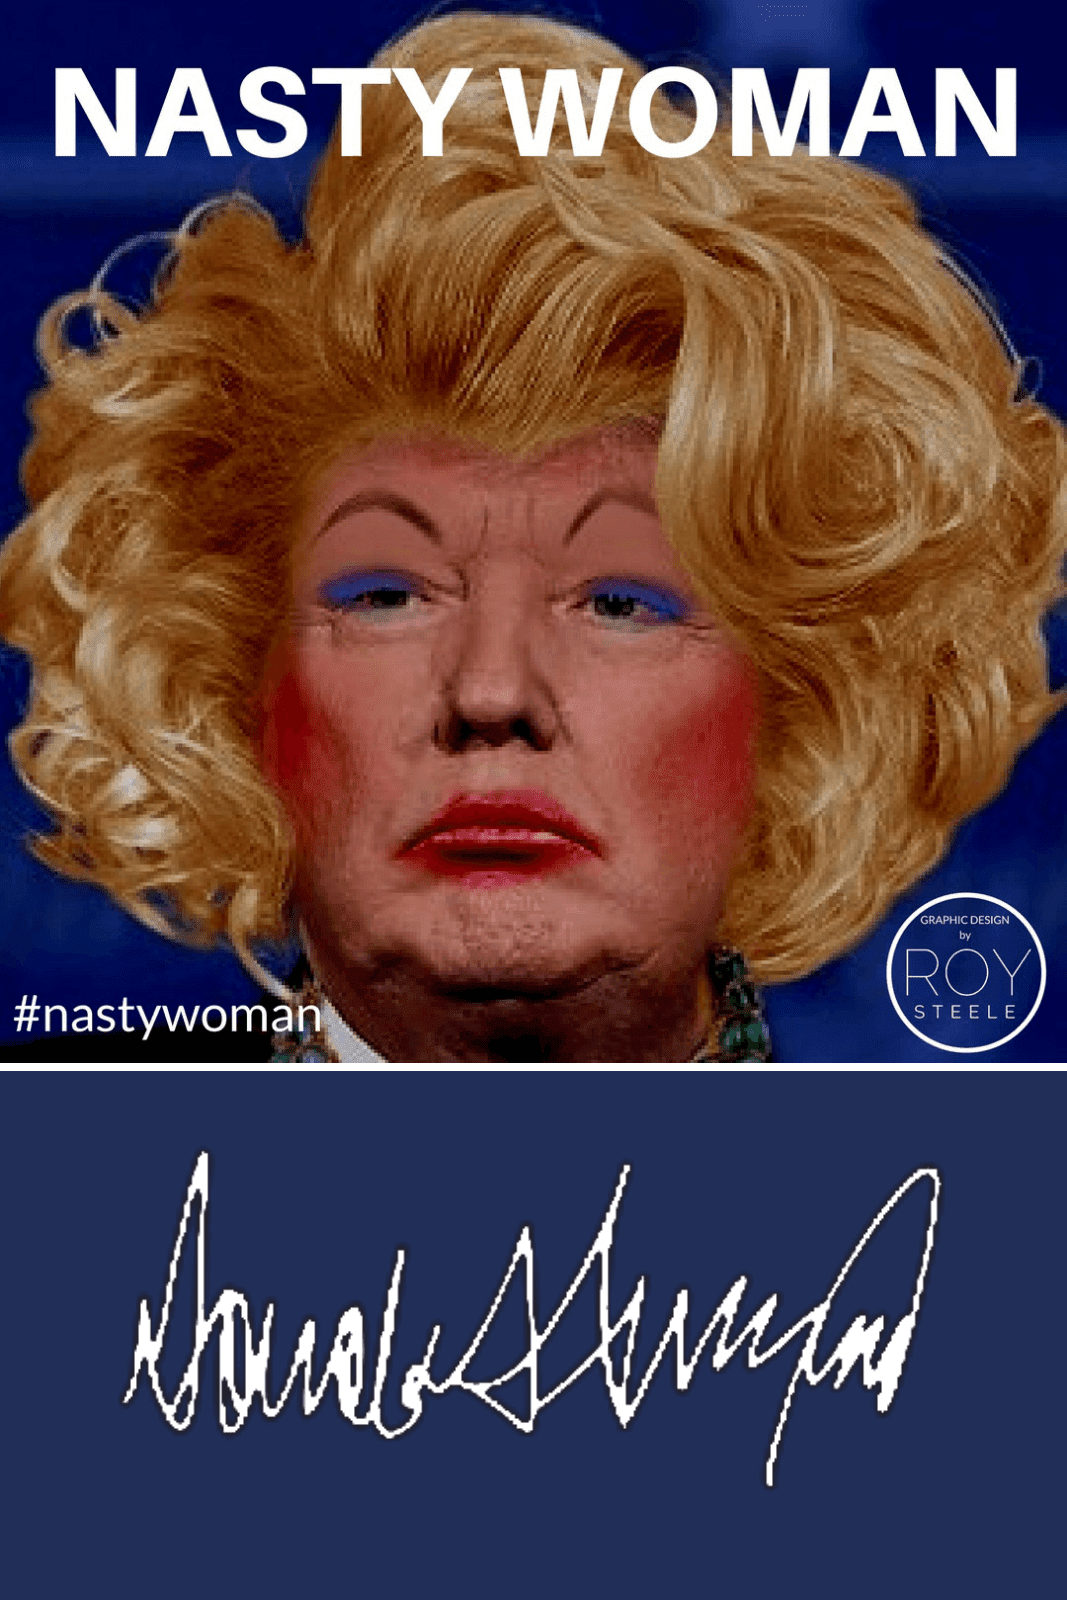 Who's That Girl - Nasty Woman Donald Trump